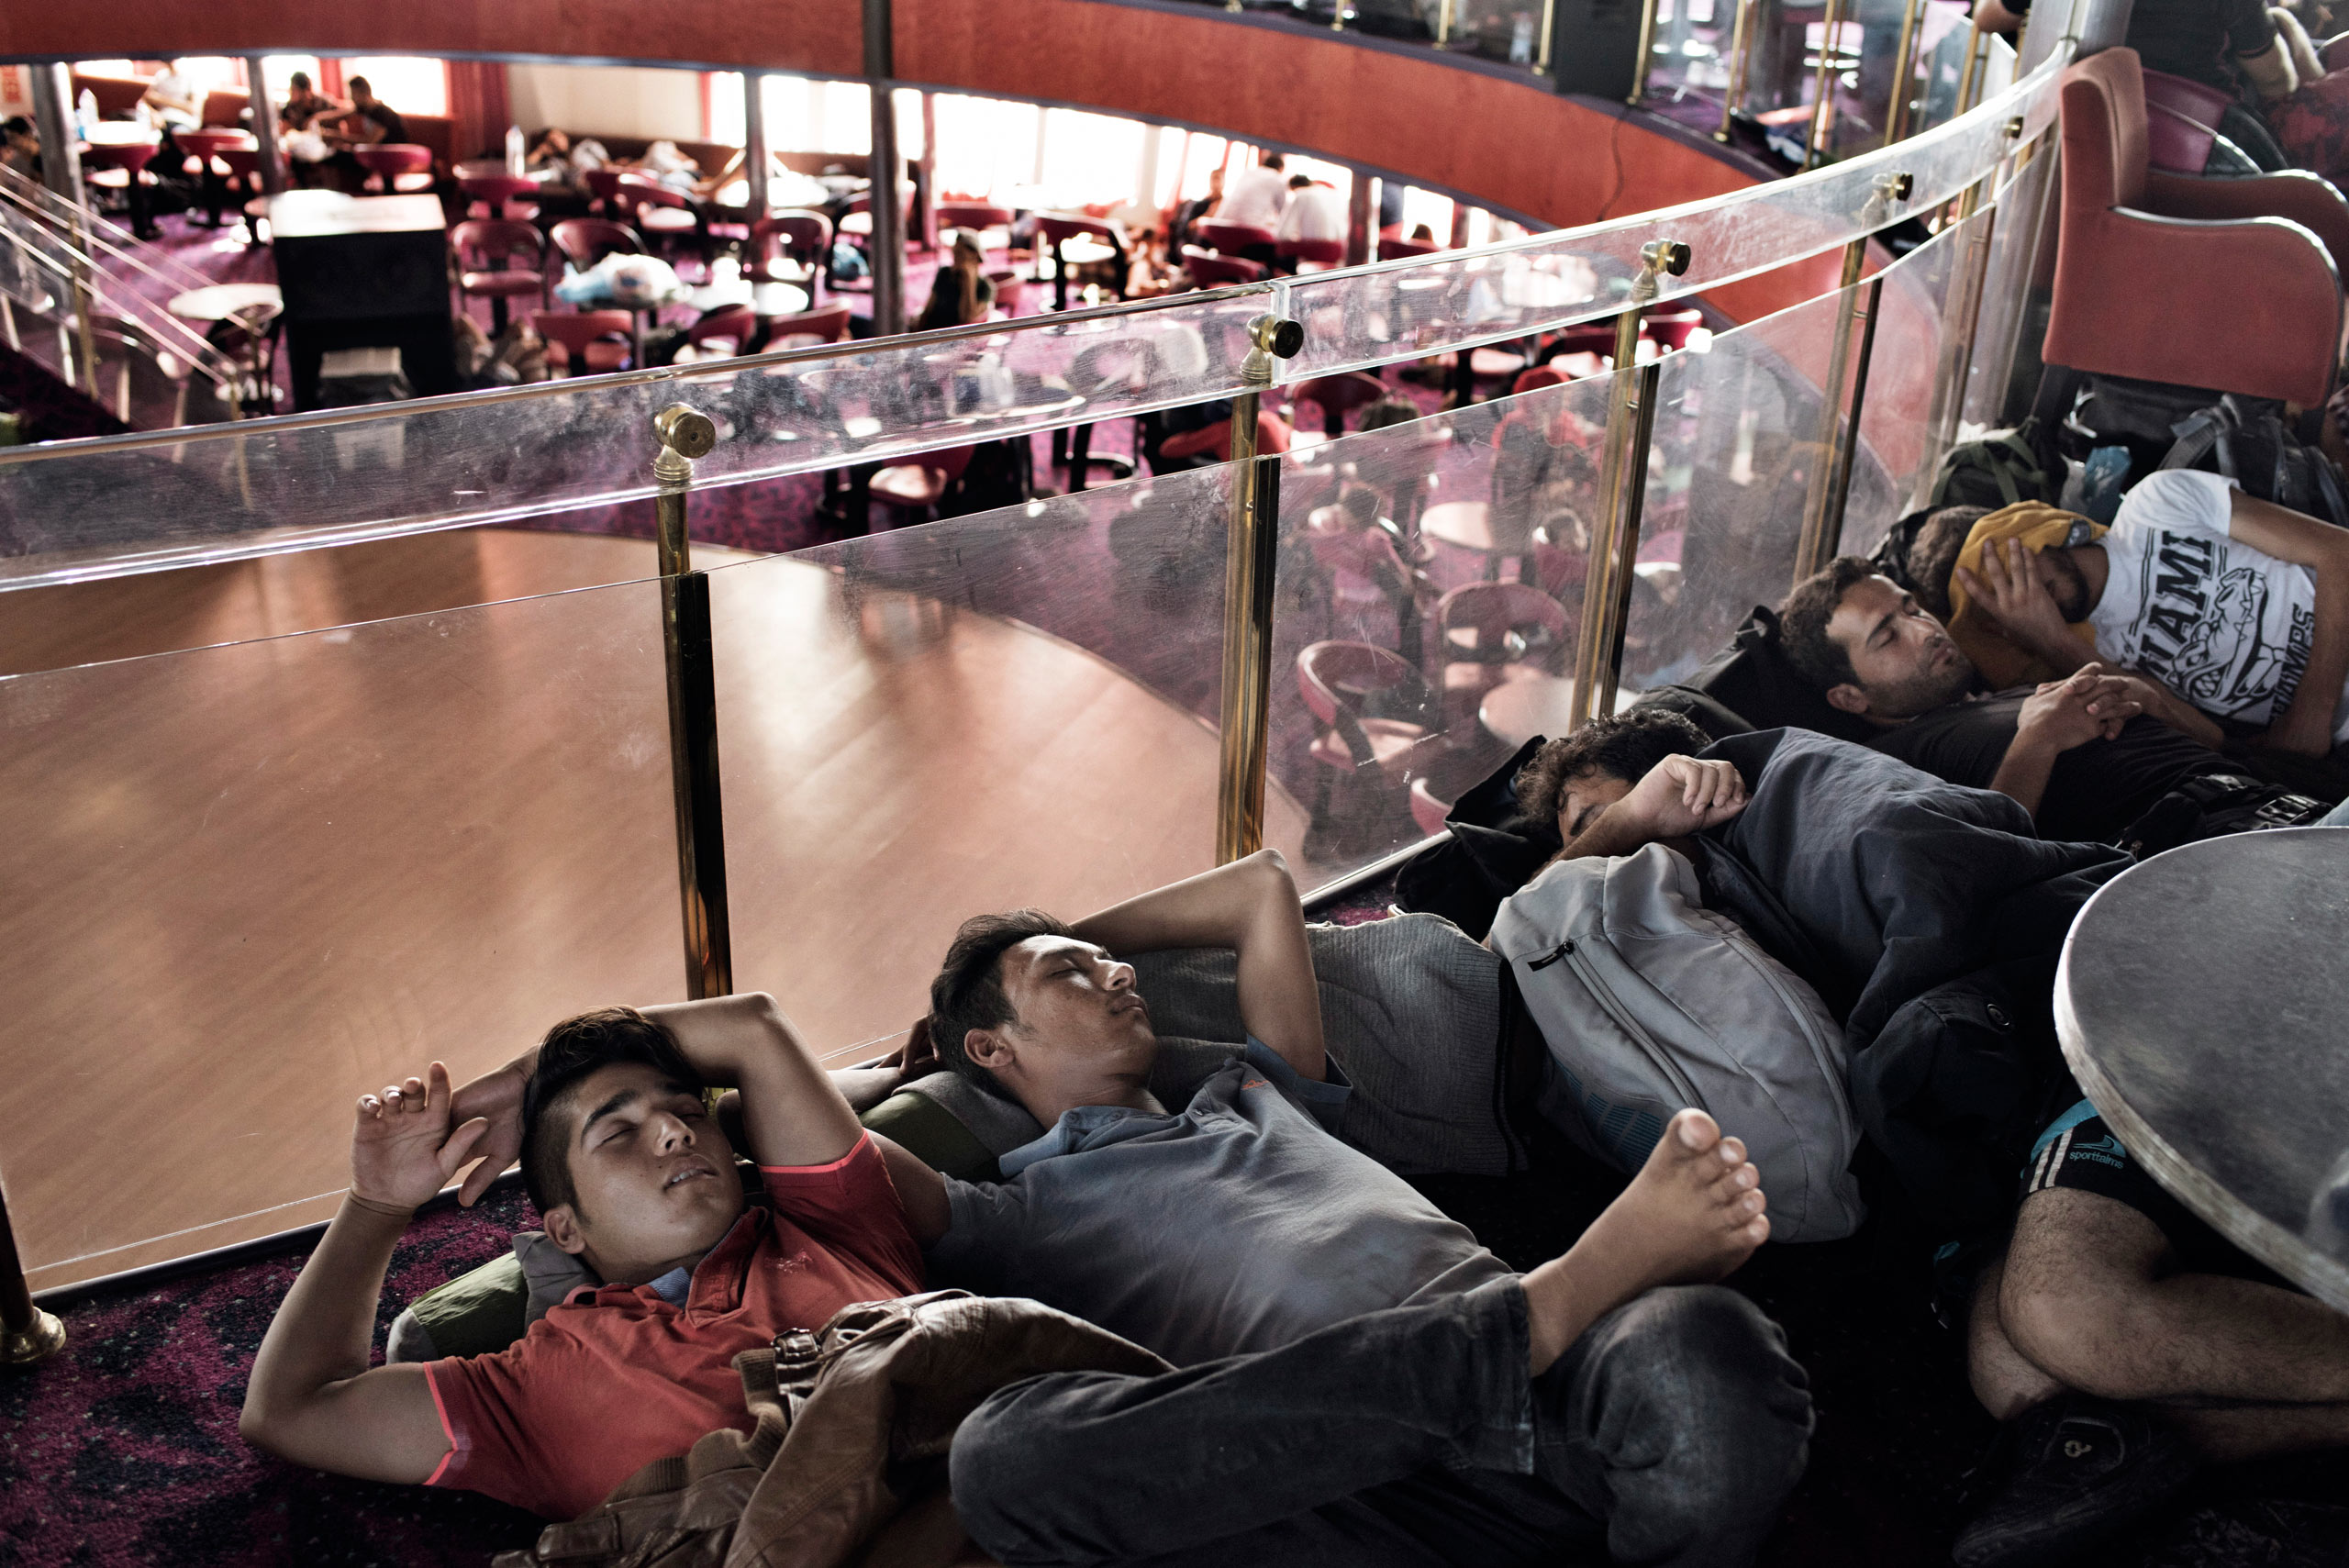 Migrants rest aboard a cruise ship that the Greek government chartered to transport them to Athens from Lesbos. The regular ferry service traveling this route was unable to cope with the unprecedented influx of migrants going through Greece to Western Europe from various conflict zones across the Muslim world. Sept. 5, 2015.